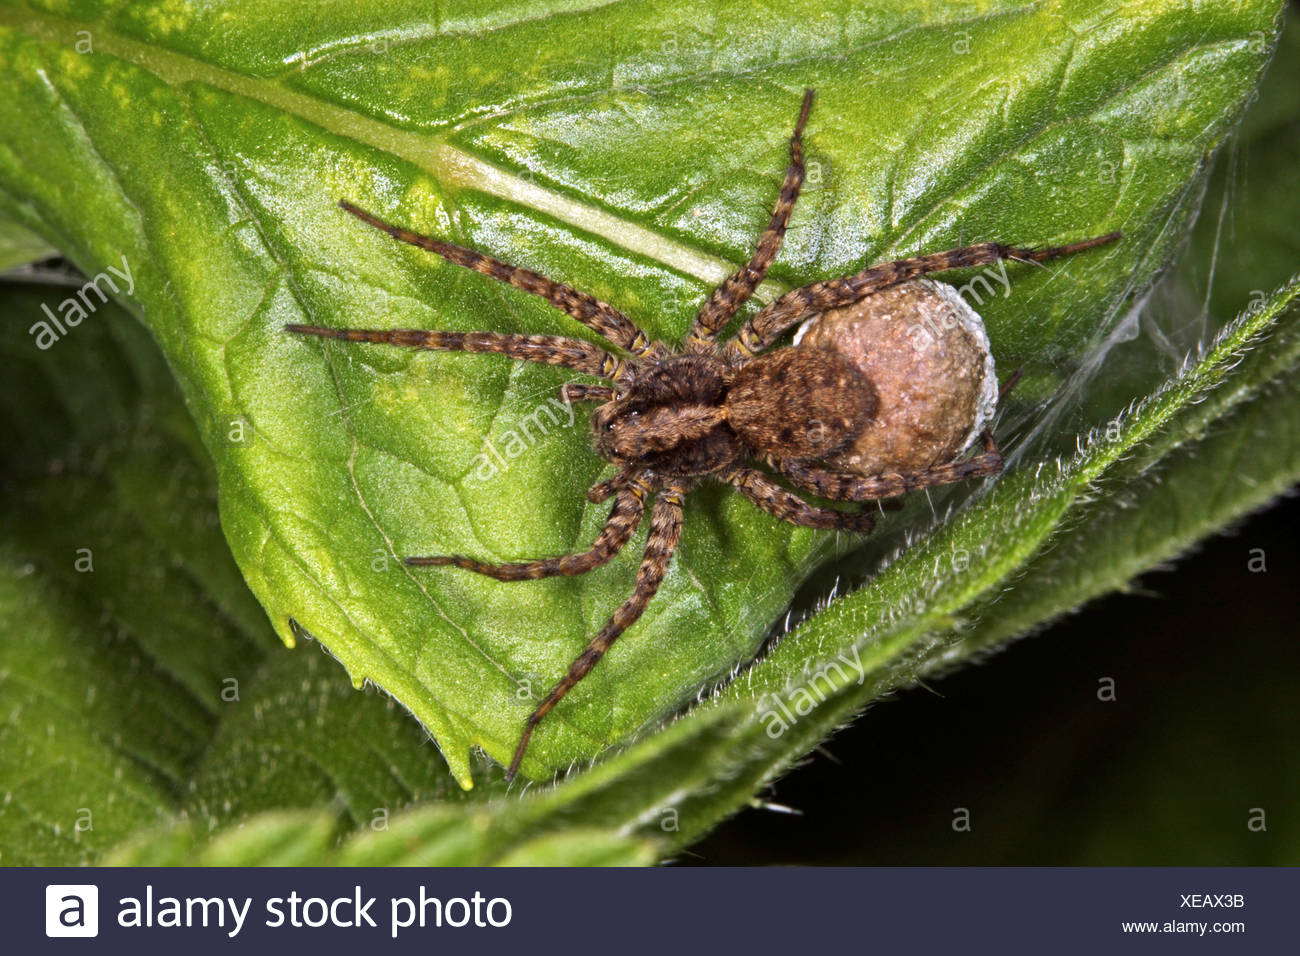 wolf spider, ground spider (Pardosa amentata), female with cocoon - Stock Image